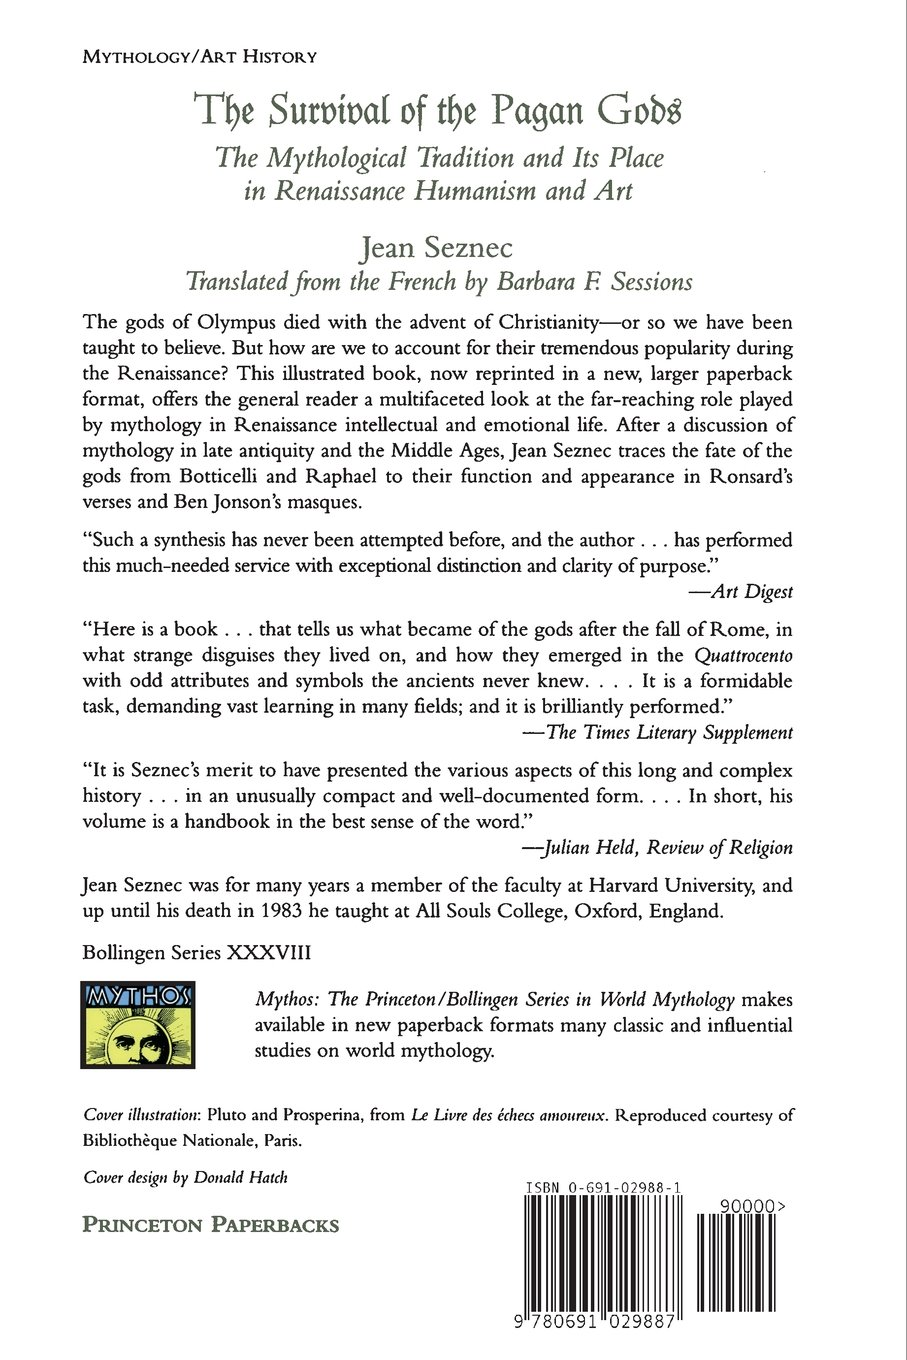 The survival of the pagan gods jean seznec barbara f sessions the survival of the pagan gods jean seznec barbara f sessions 9780691029887 amazon books buycottarizona